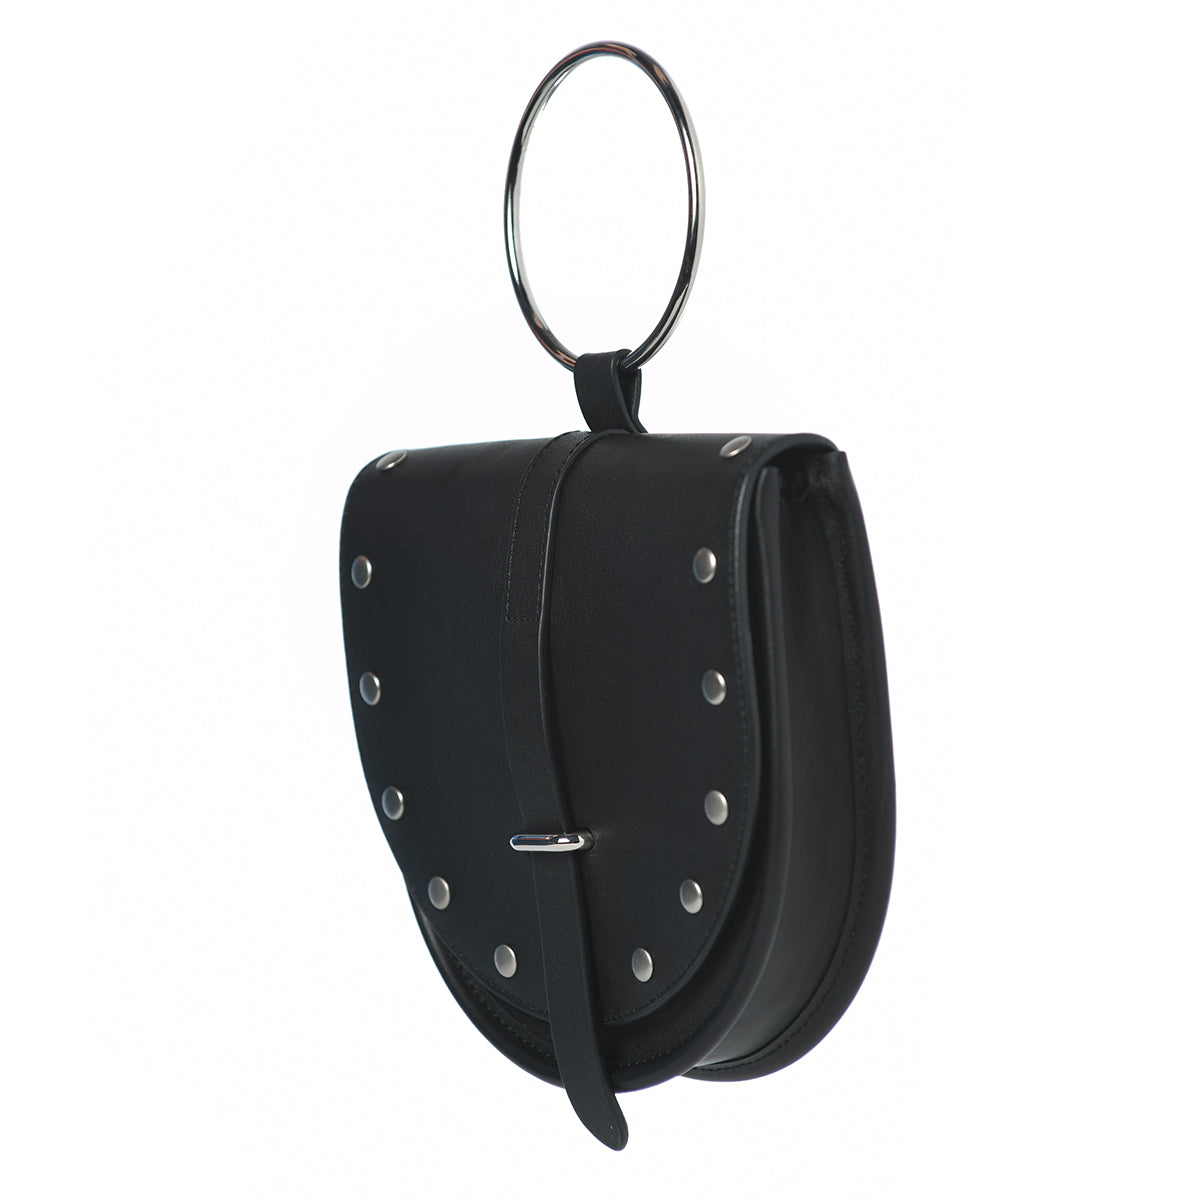 Limited O-Ring Black Leather Handbag